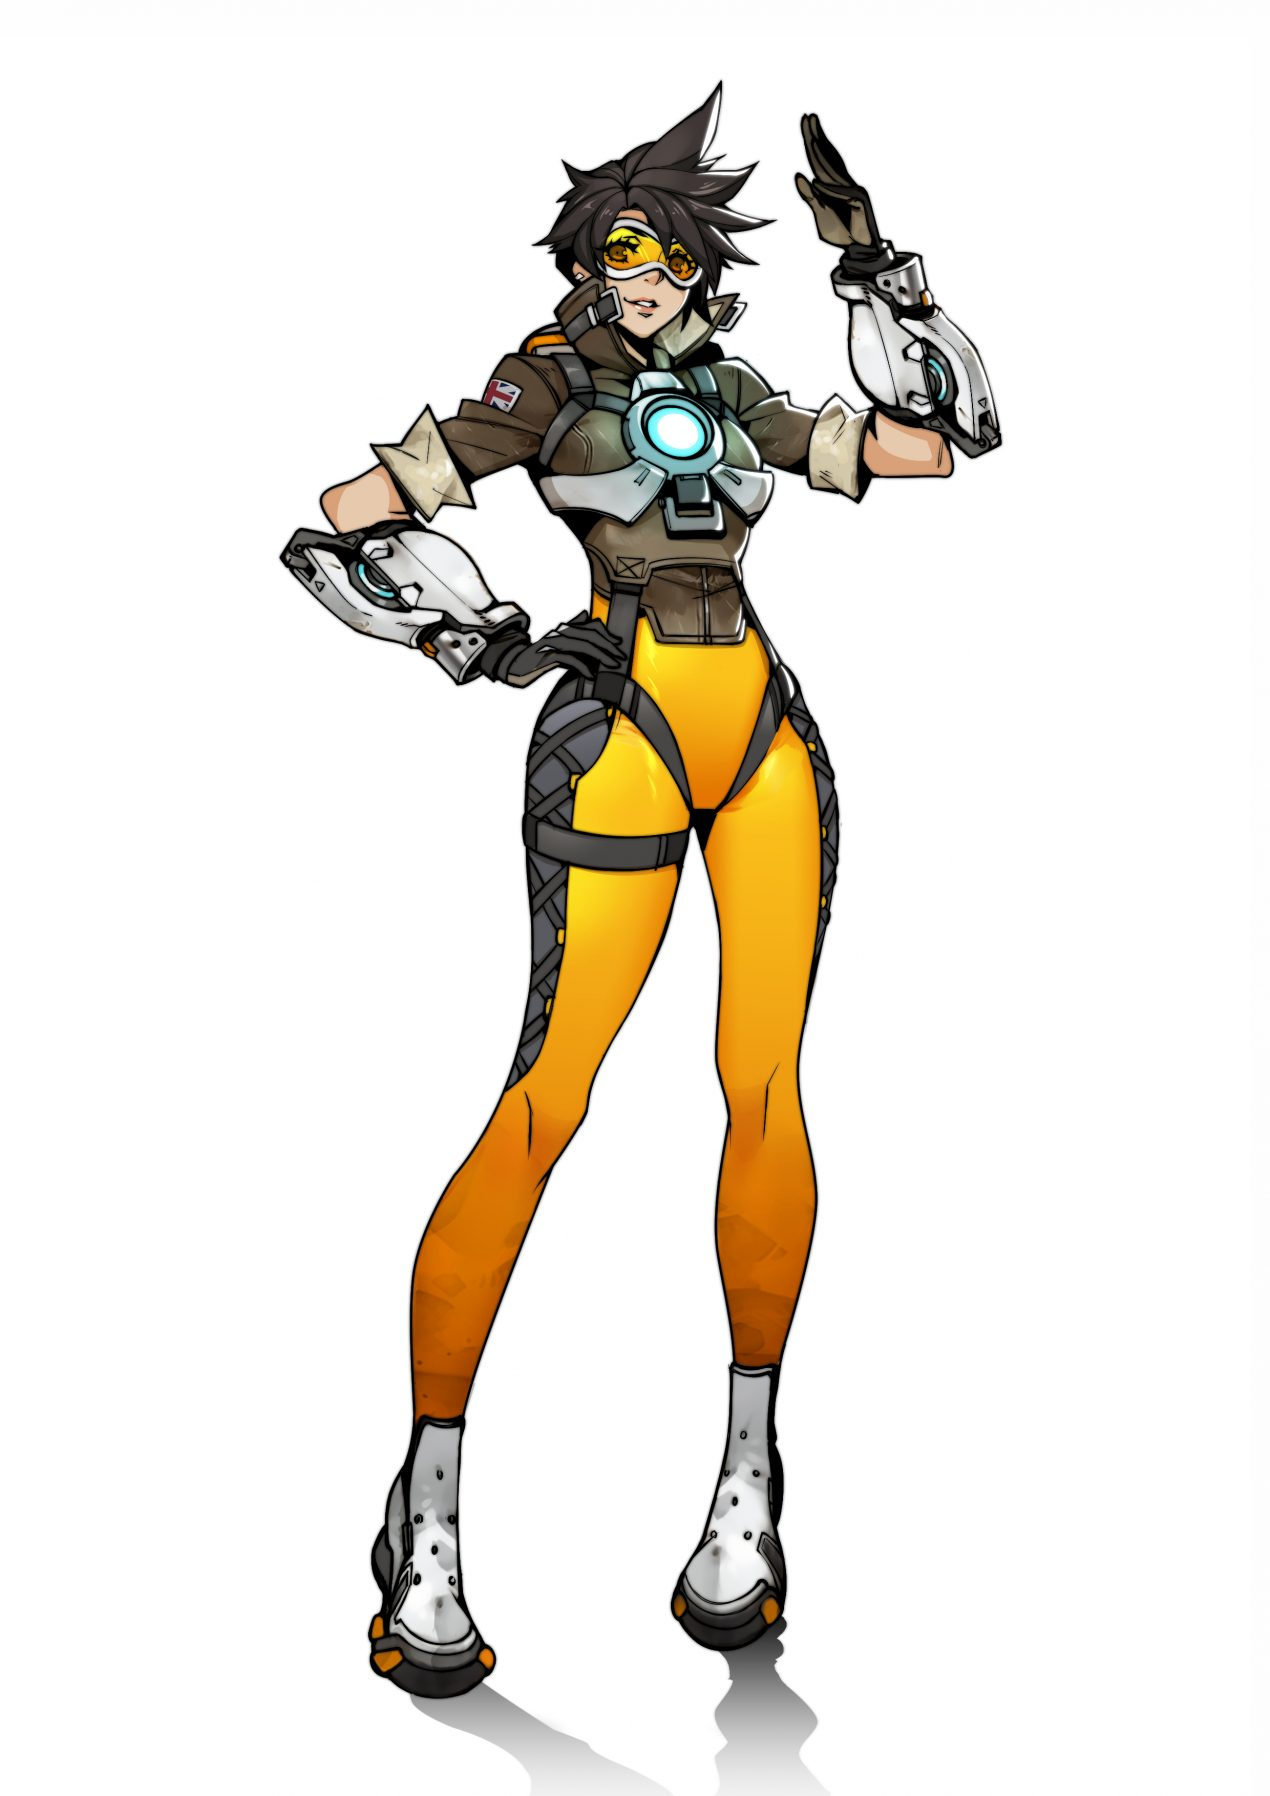 How to Draw Tracer from Overwatch